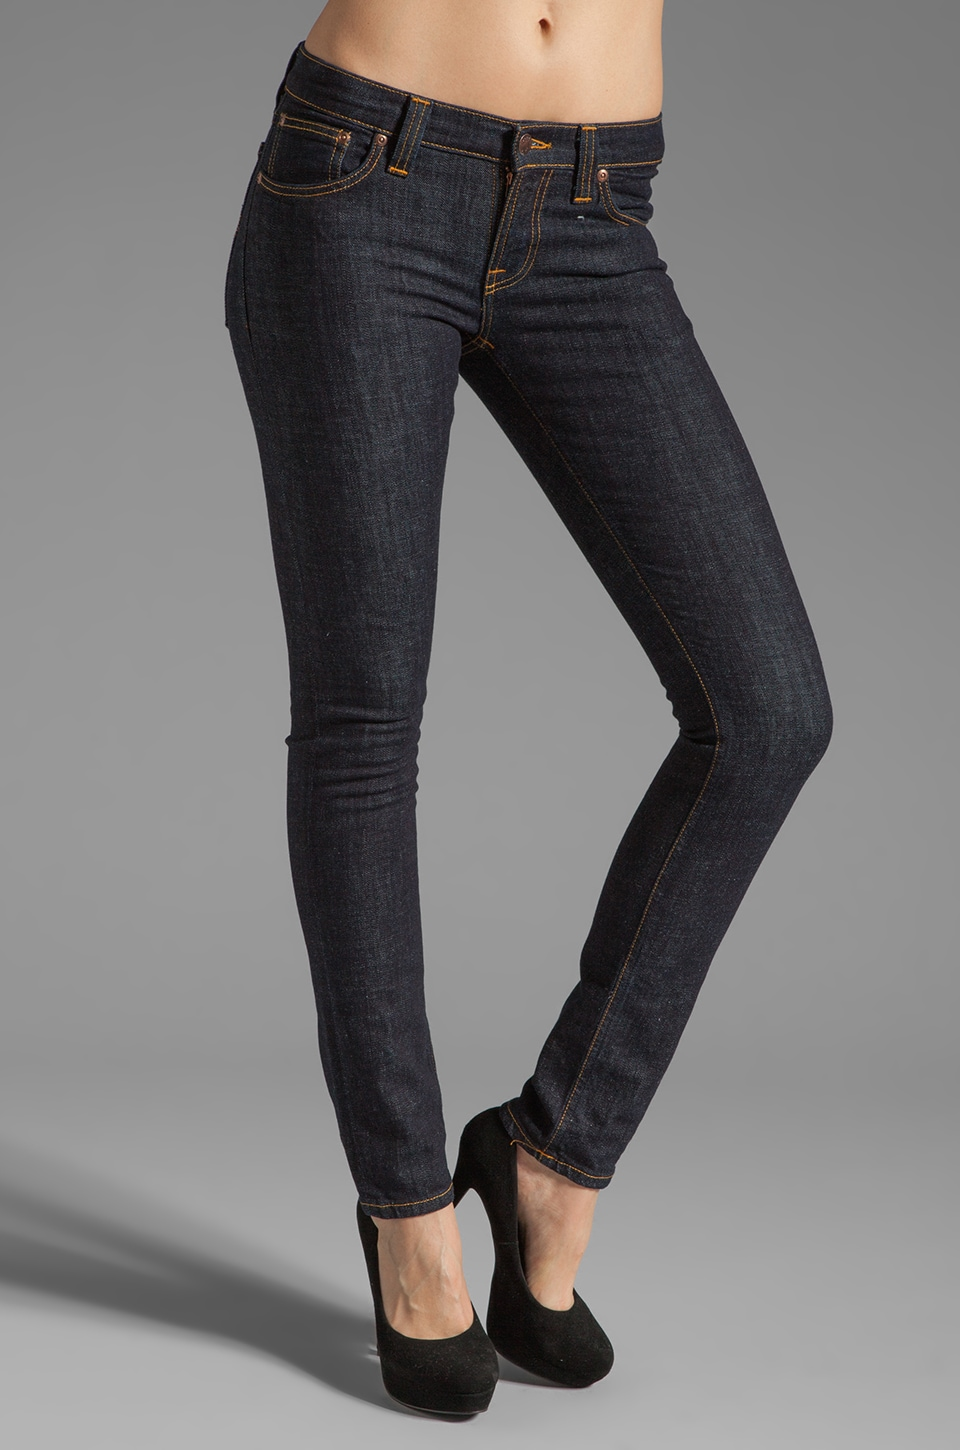 Nudie Jeans Tight Long John in Organic Twill Rinsed